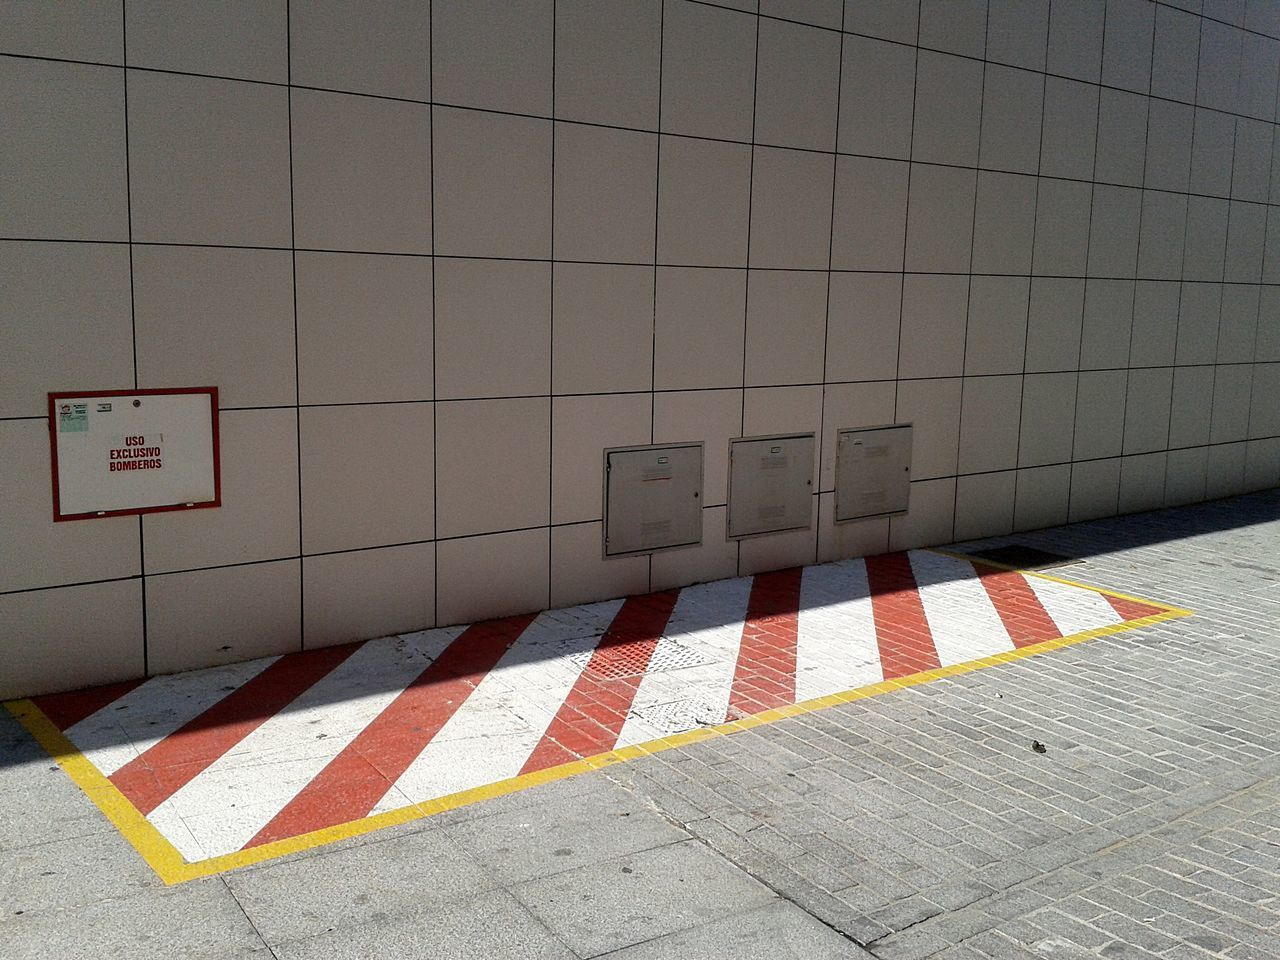 High Angle View Of Marking On Street By Building During Sunny Day